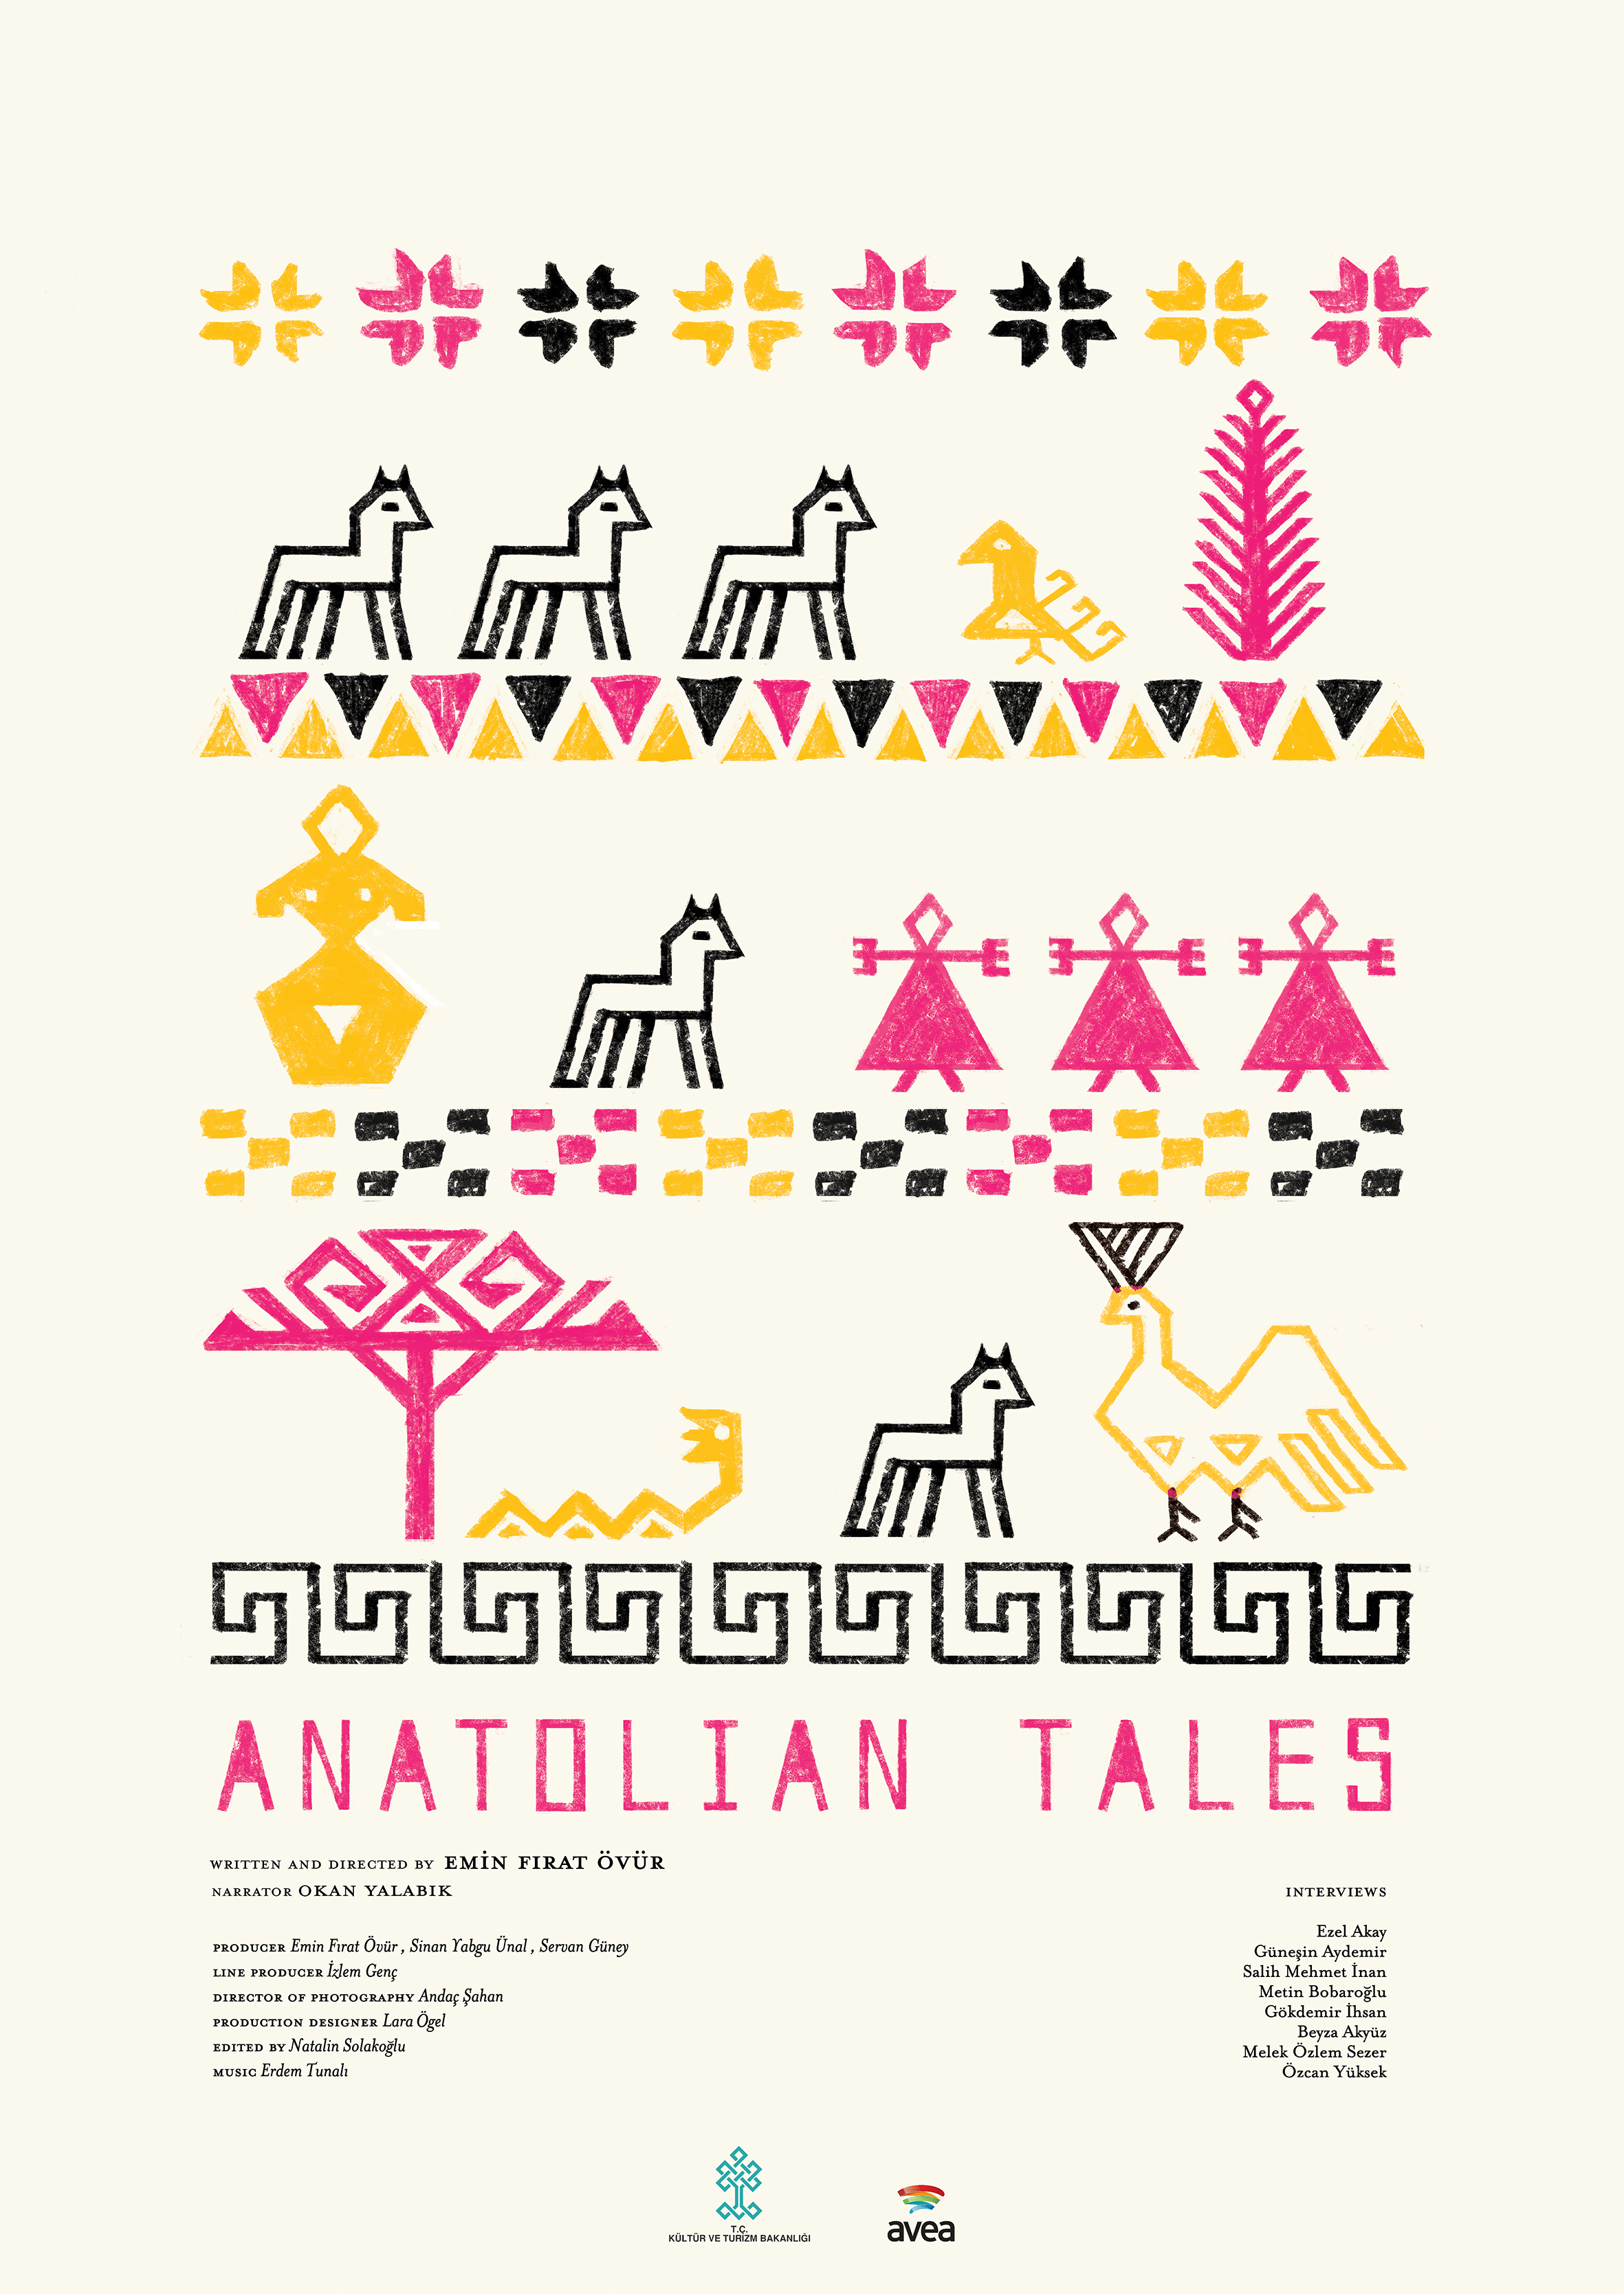 Poster I designed and illustrated   for docu-drama about Anatolian   t ales. The visual language of the piece is  inspired by   I  nandik Vase   and Turkish traditional kilim motifs.